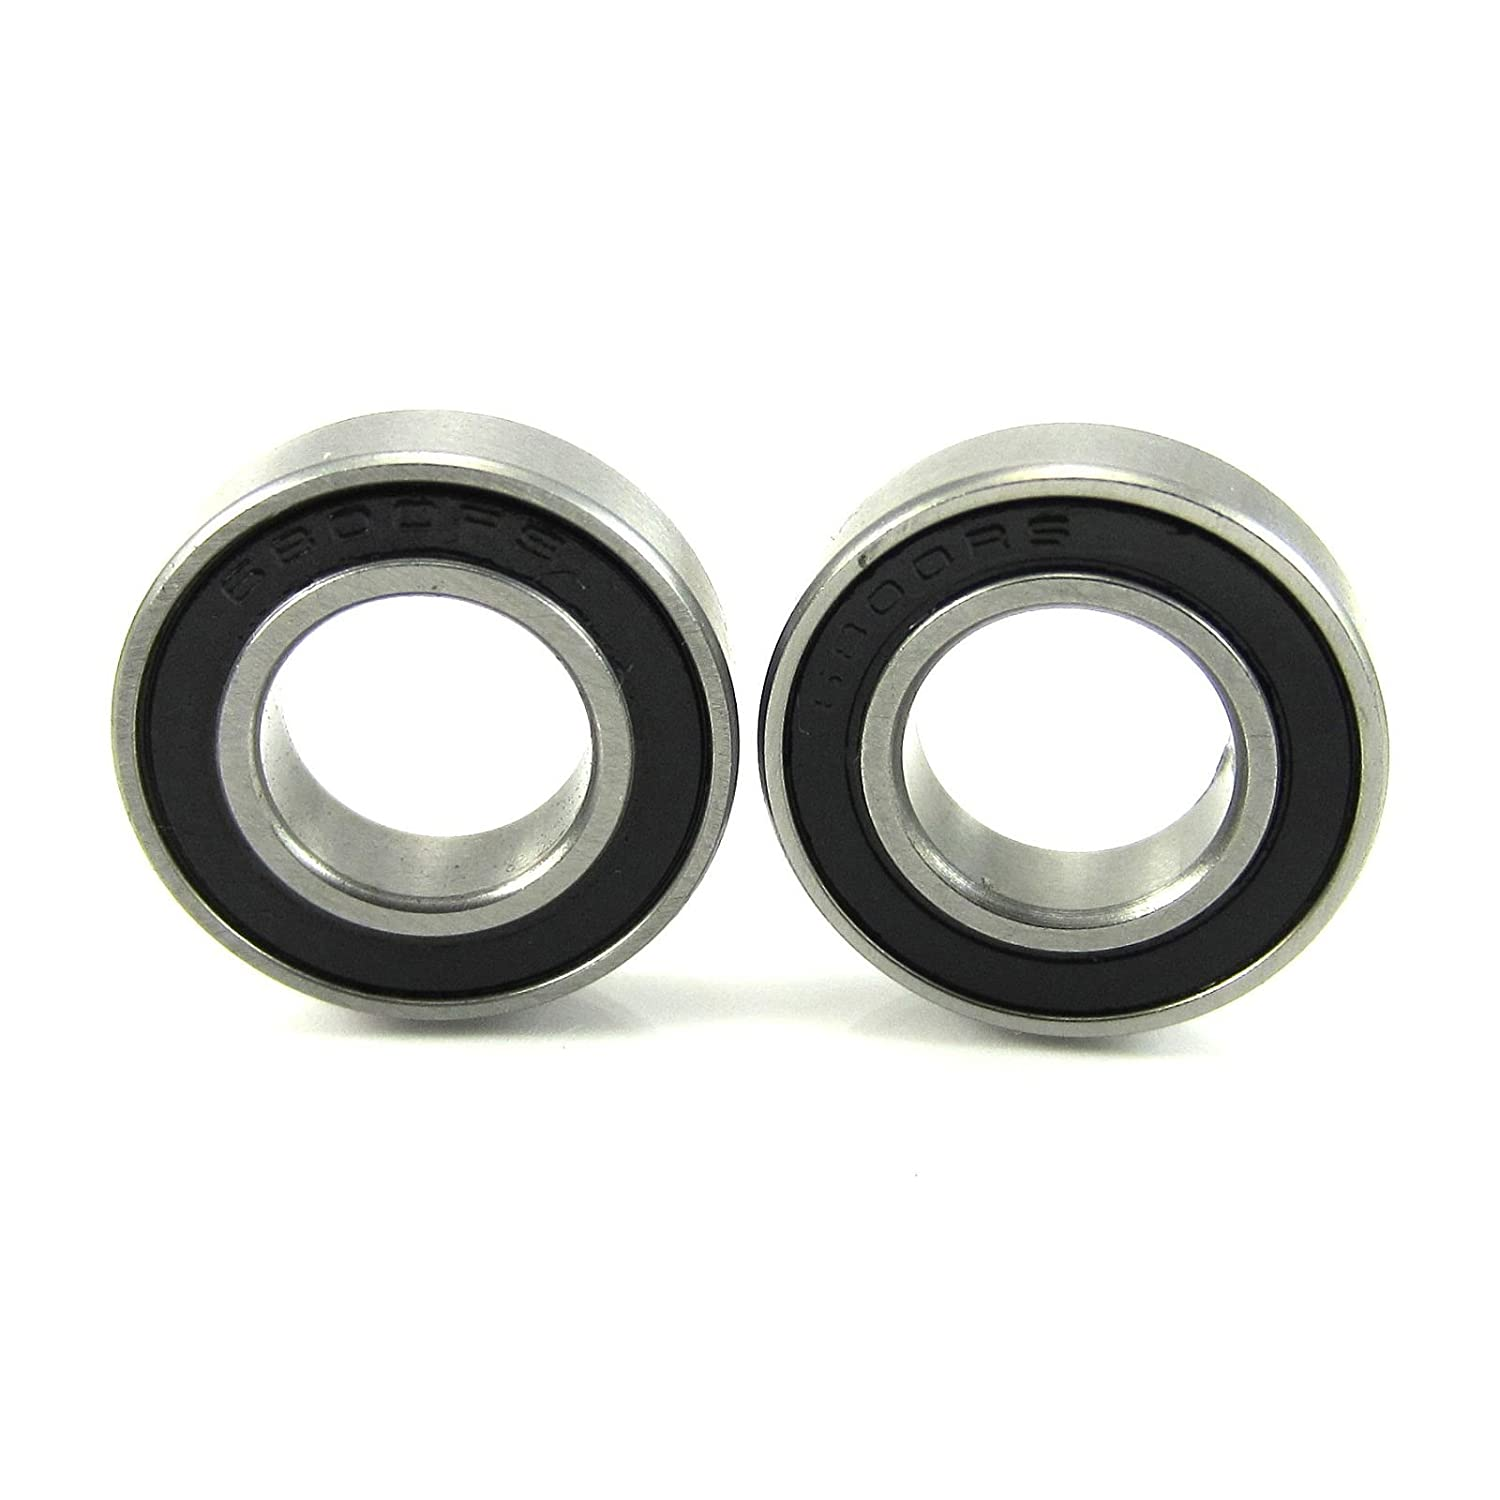 (2) 10x19x5mm Precision Ball Bearings ABEC 3 Rubber Seals TRB RC